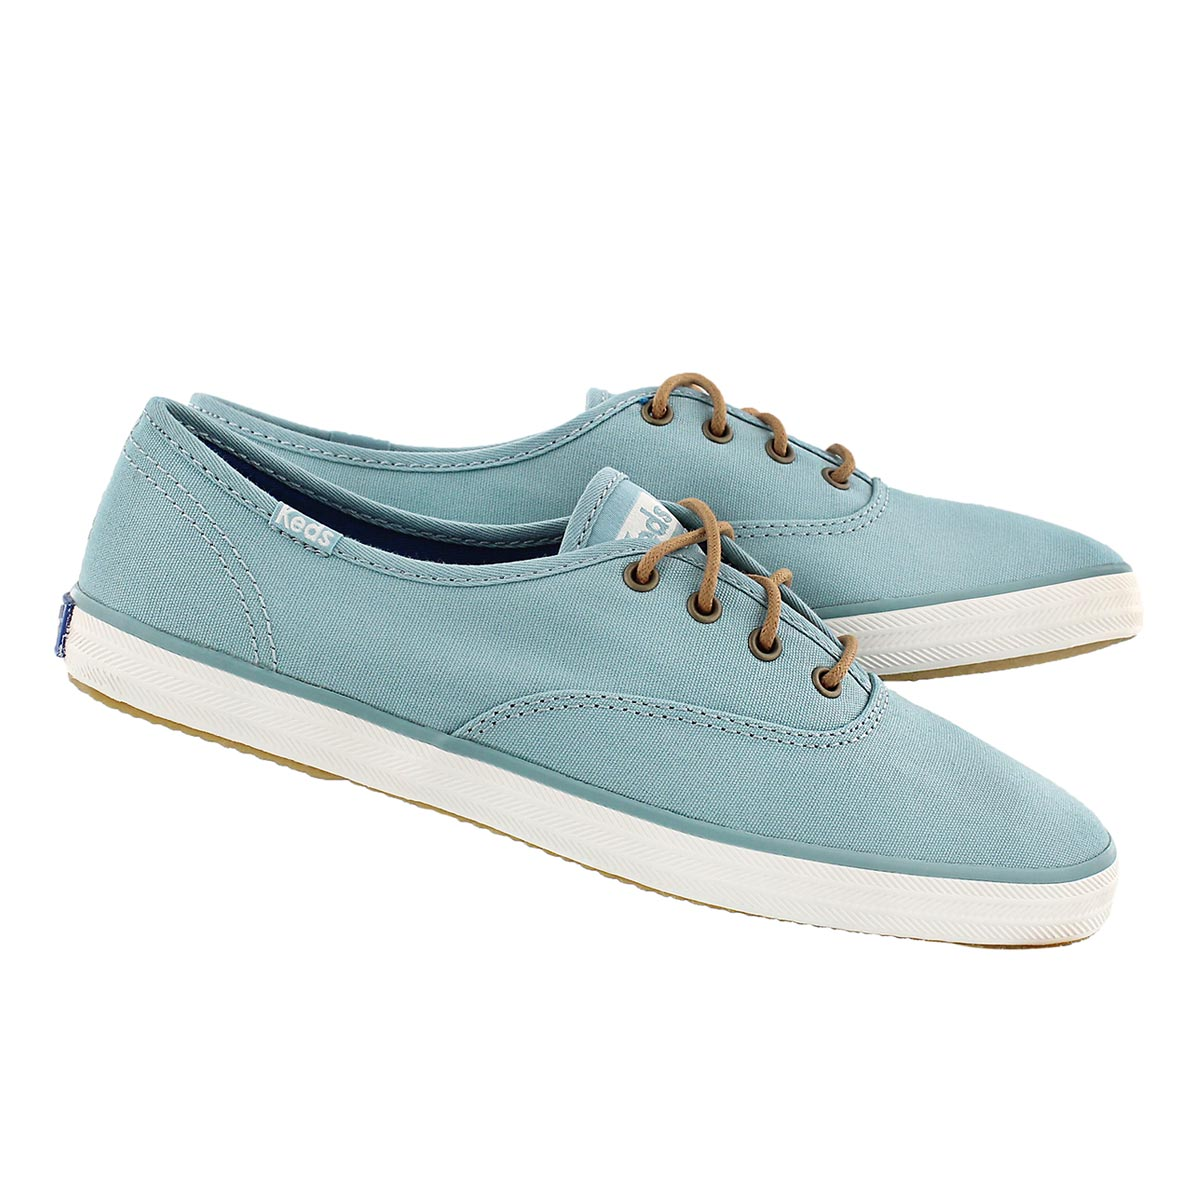 Lds Champion dusty blue canvas sneaker